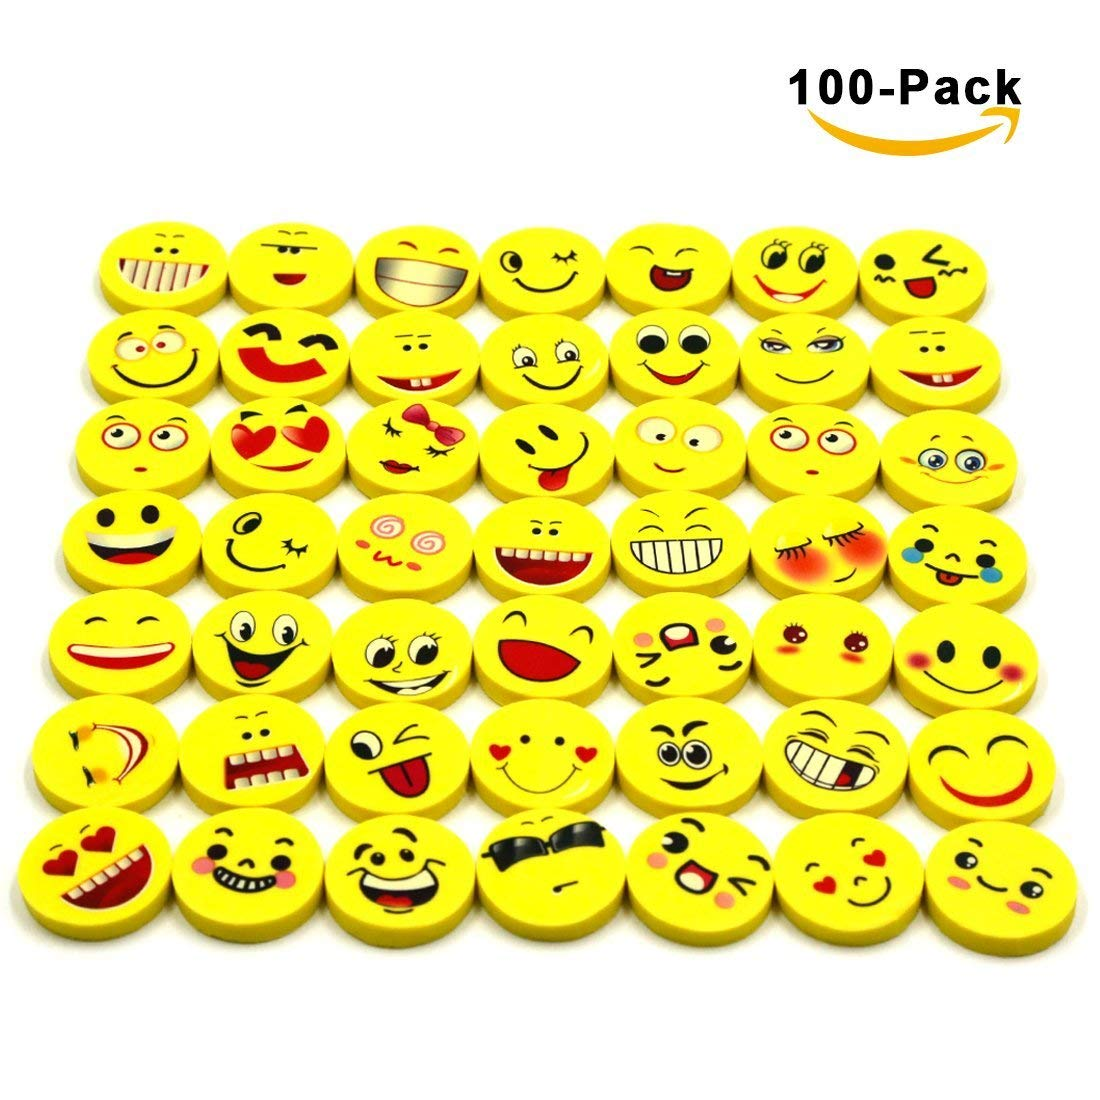 100 Pack Emoji Pencil Erasers 40 Emoticons Novelty Erasers for Party Favors School Classroom Prizes Rewards